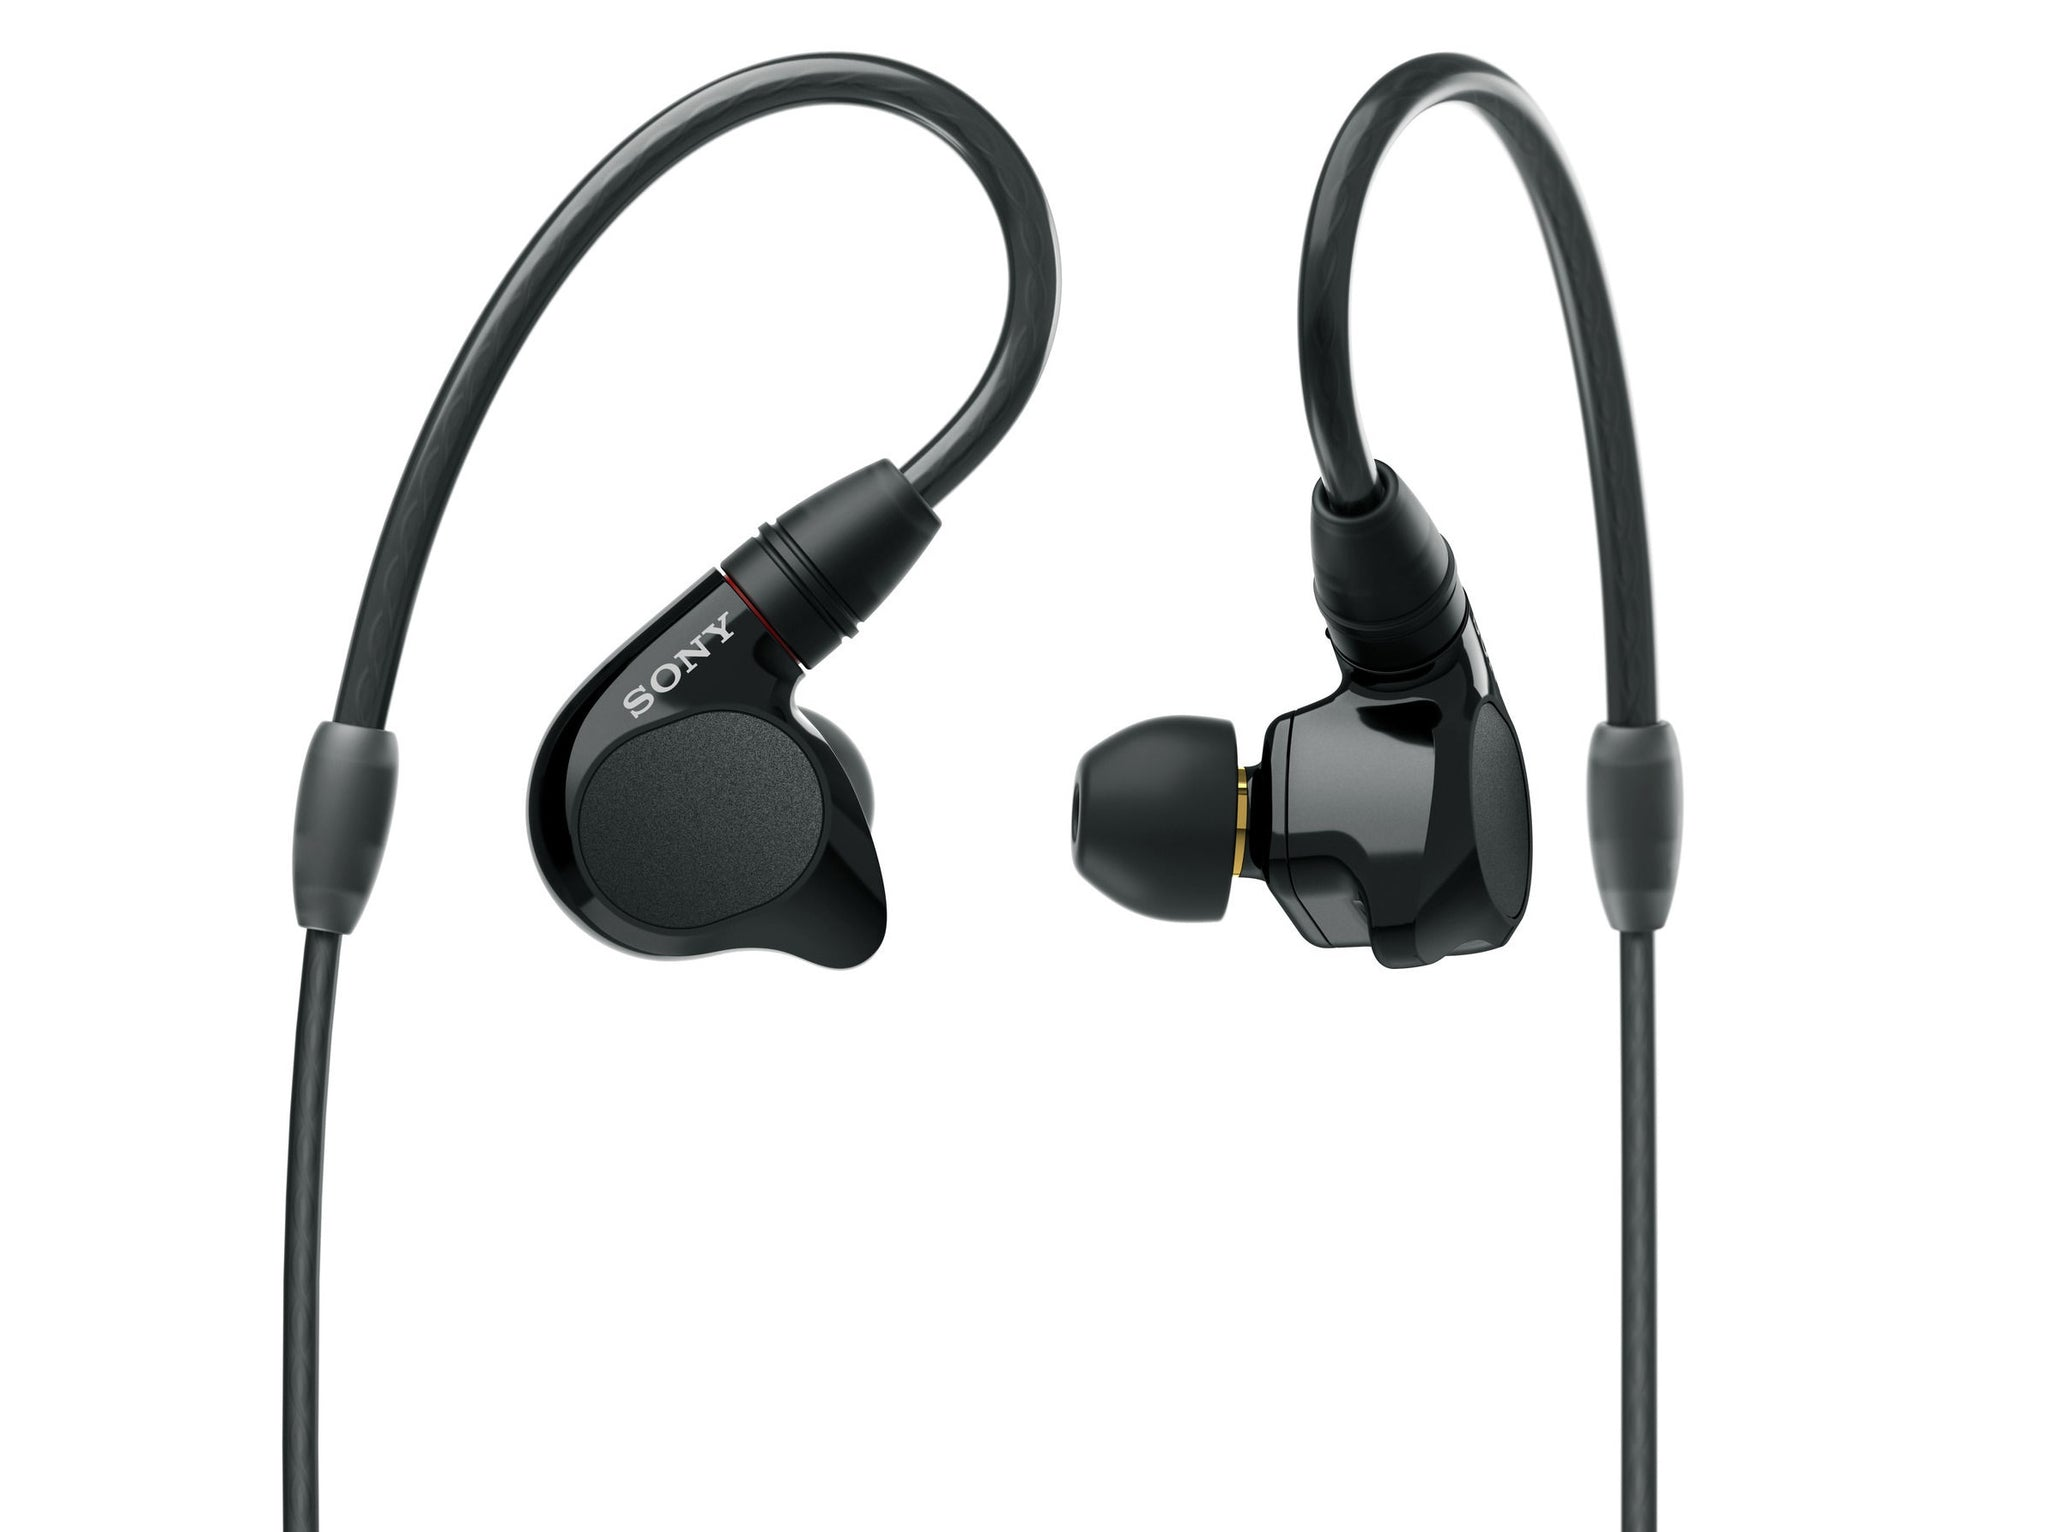 Sony IER-M7 - Jaben - The Little Headphone Store